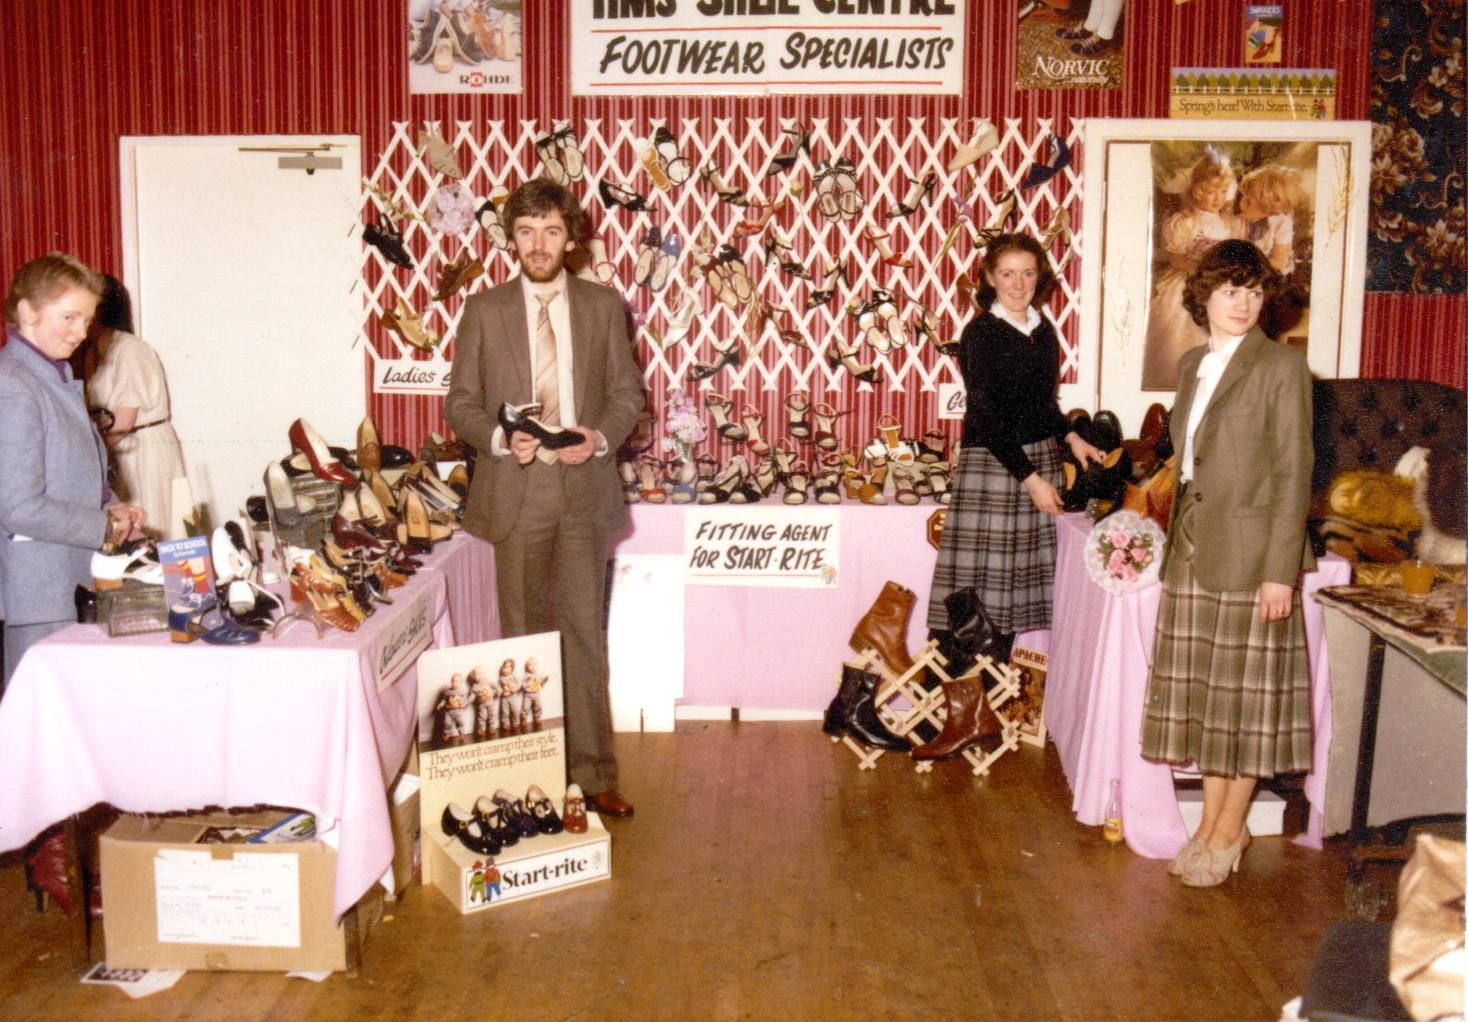 Decades of experience: Tim's Shoe Centre's stand at the wedding fair in March 1980